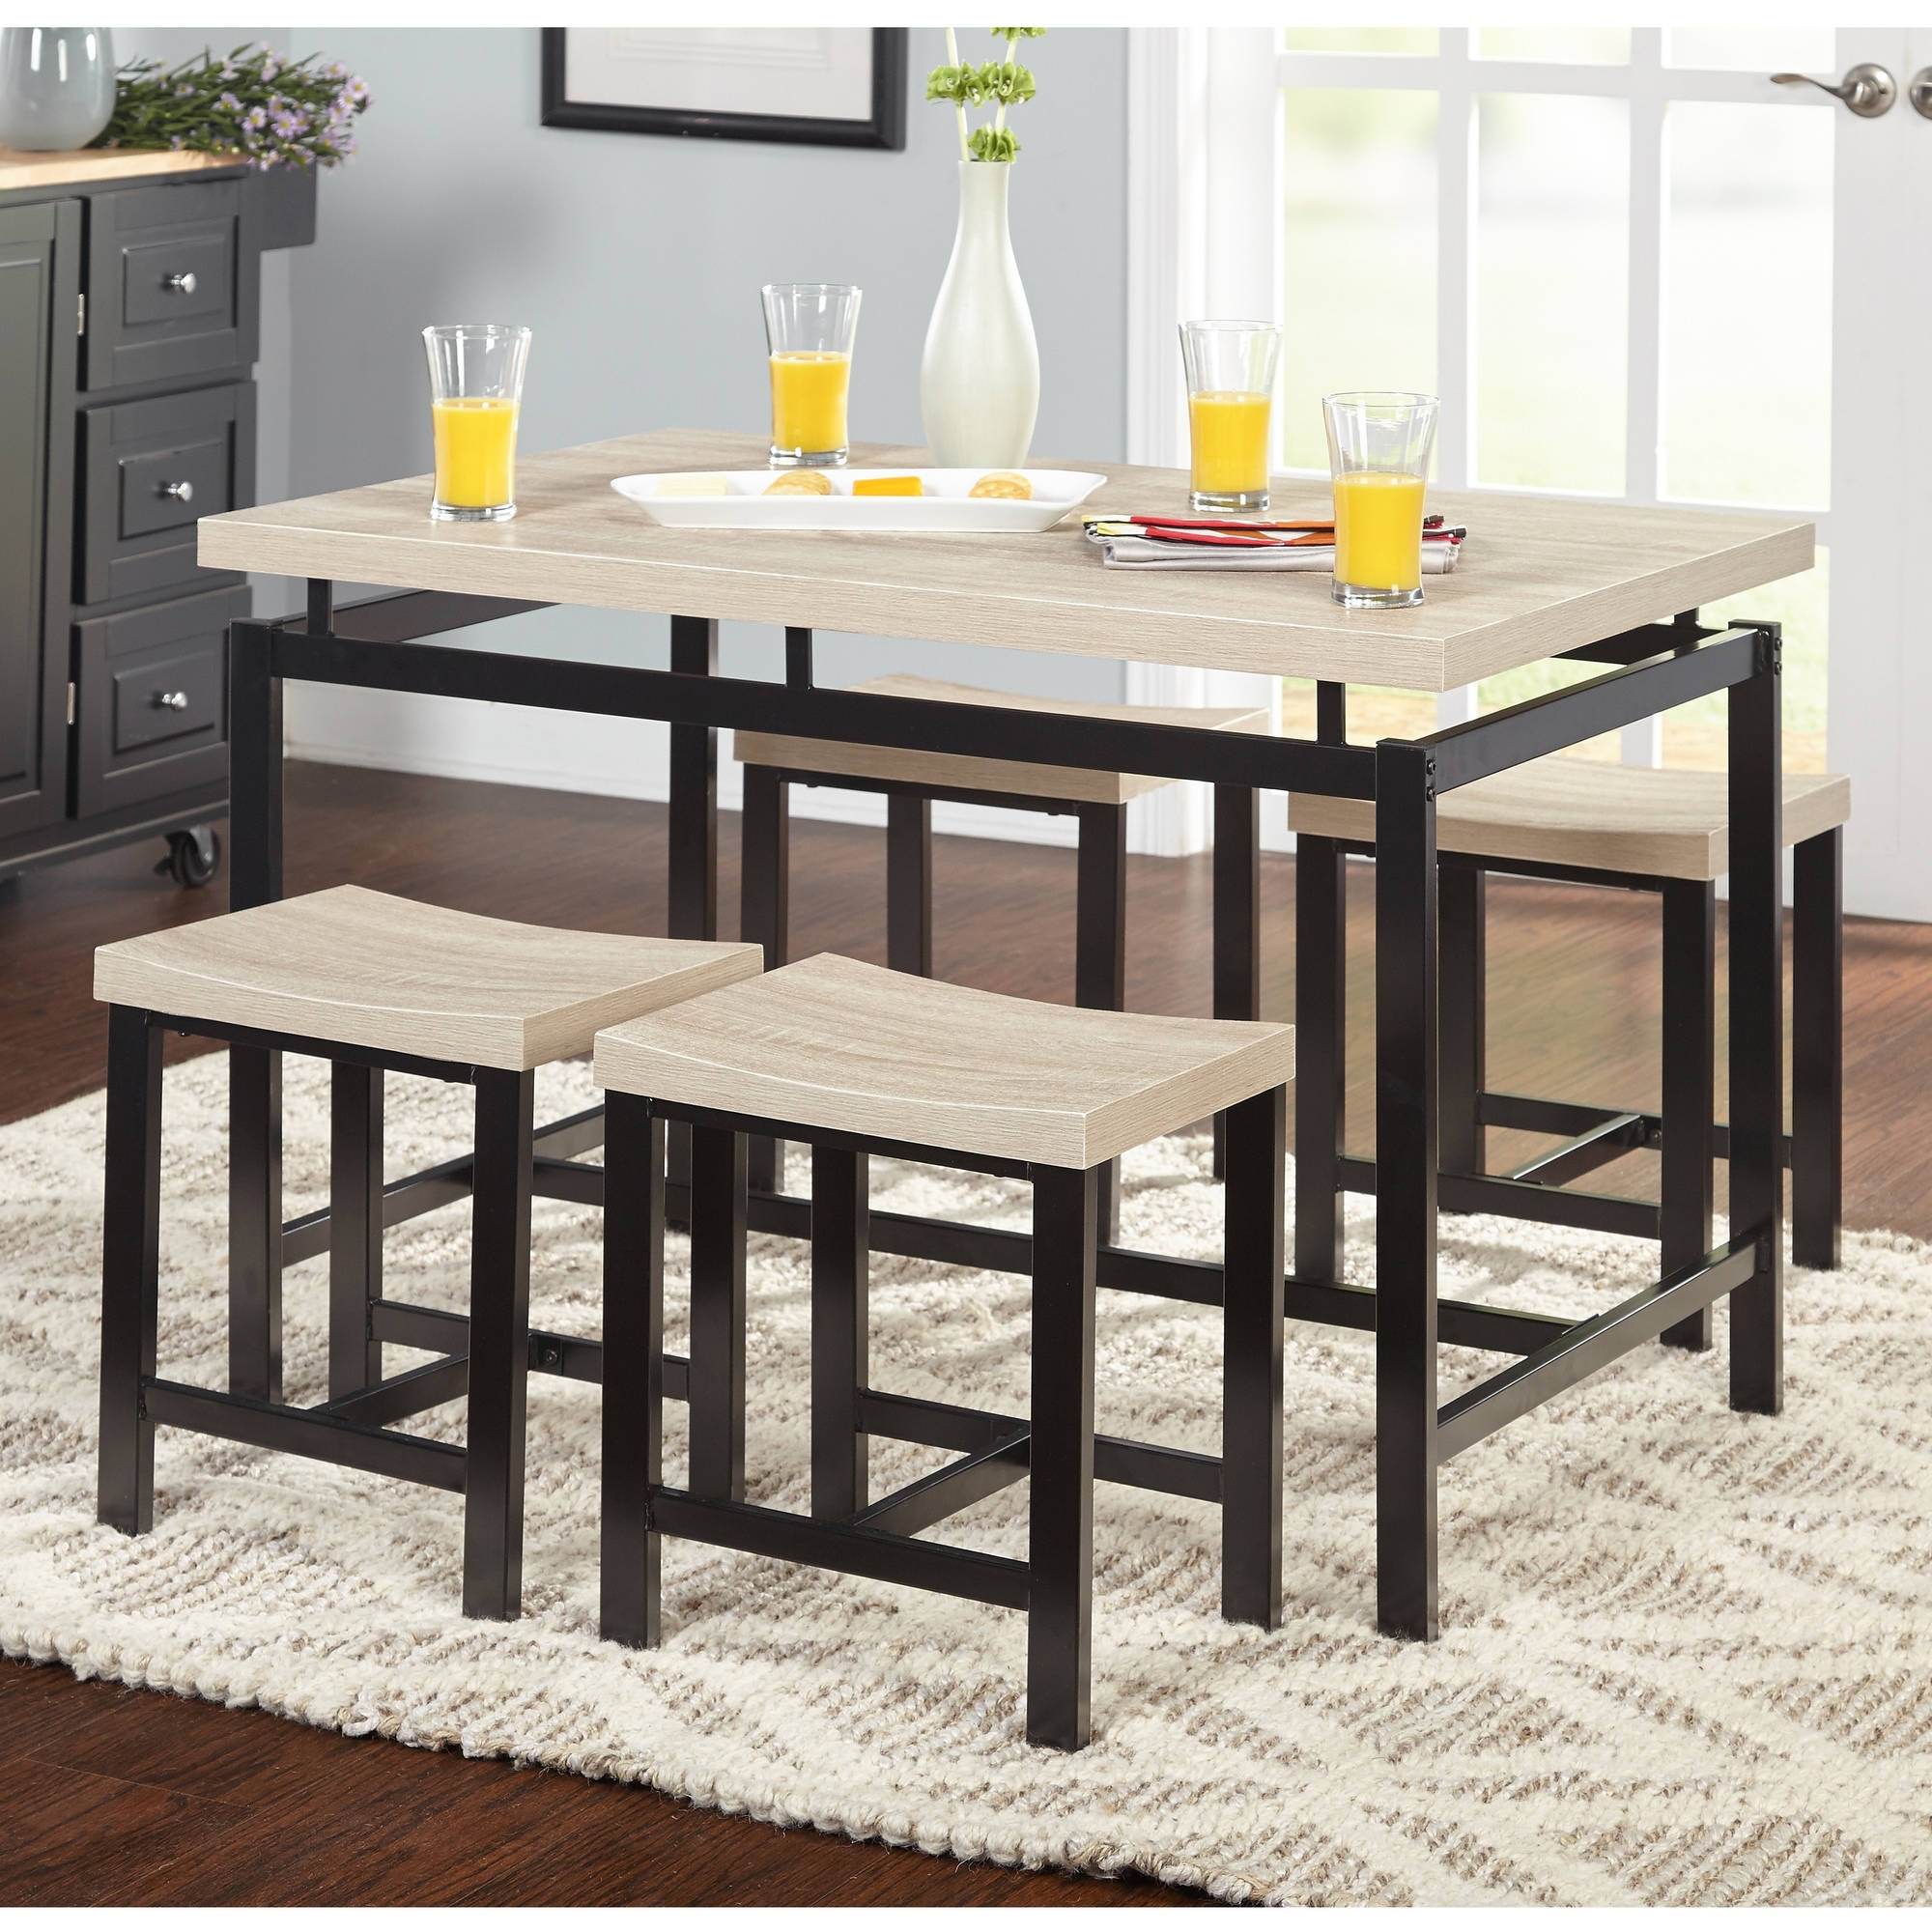 Black Wood Dining Set Contemporary 5 Piece Delano Natural Walmart Inside Most Recent Macie 5 Piece Round Dining Sets (Image 7 of 20)